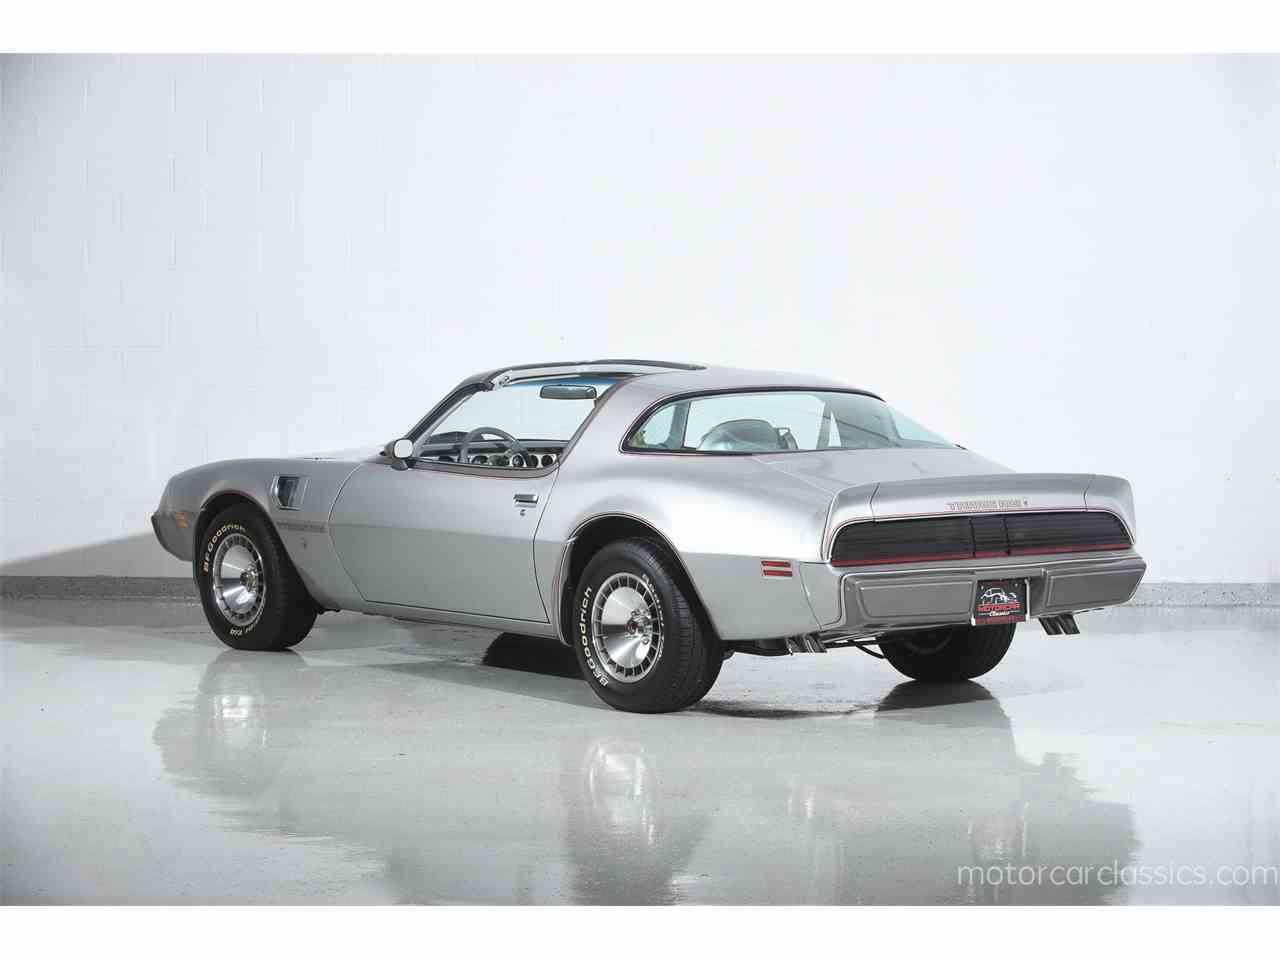 Large Picture of 1979 Pontiac Firebird Trans Am - $49,900.00 - MBN8